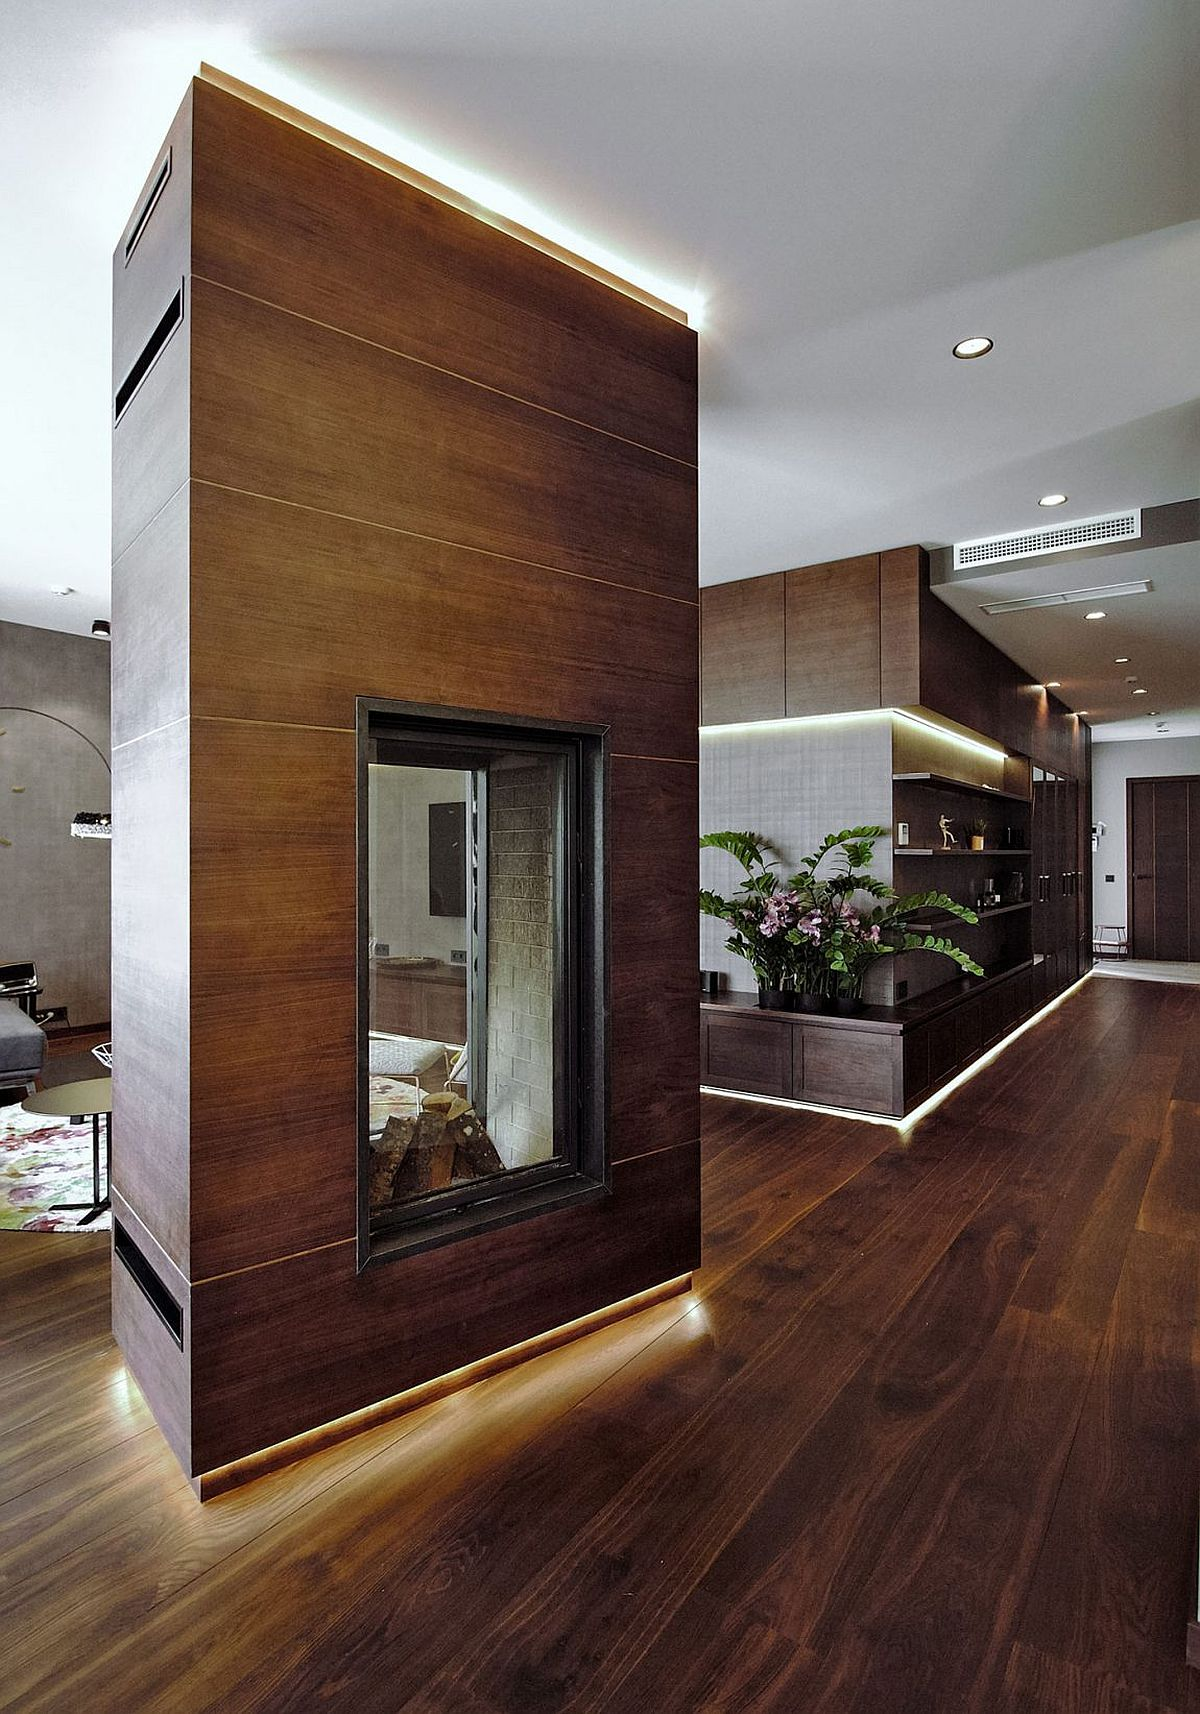 Two-sided fireplace in the living room also delineates space